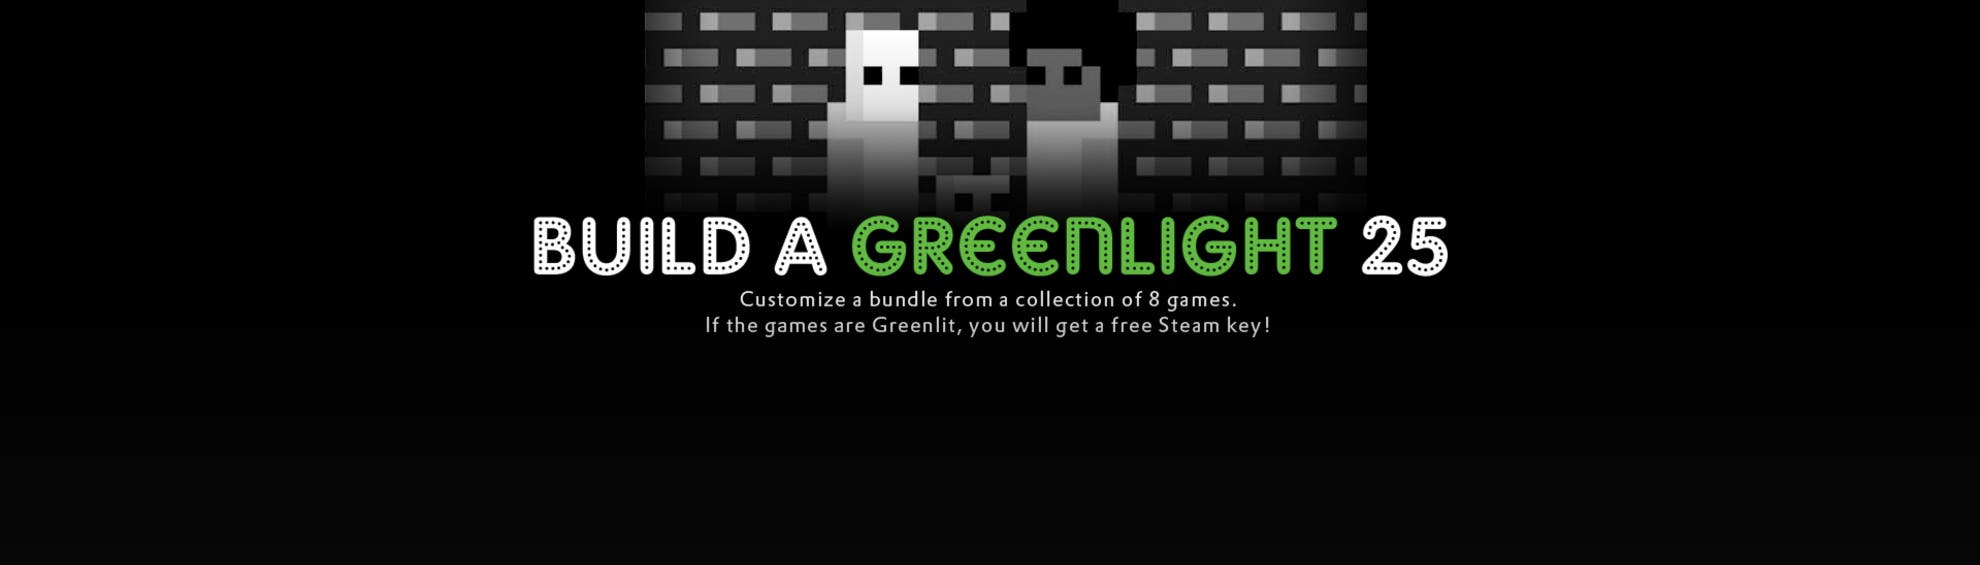 build a greenlight groupees